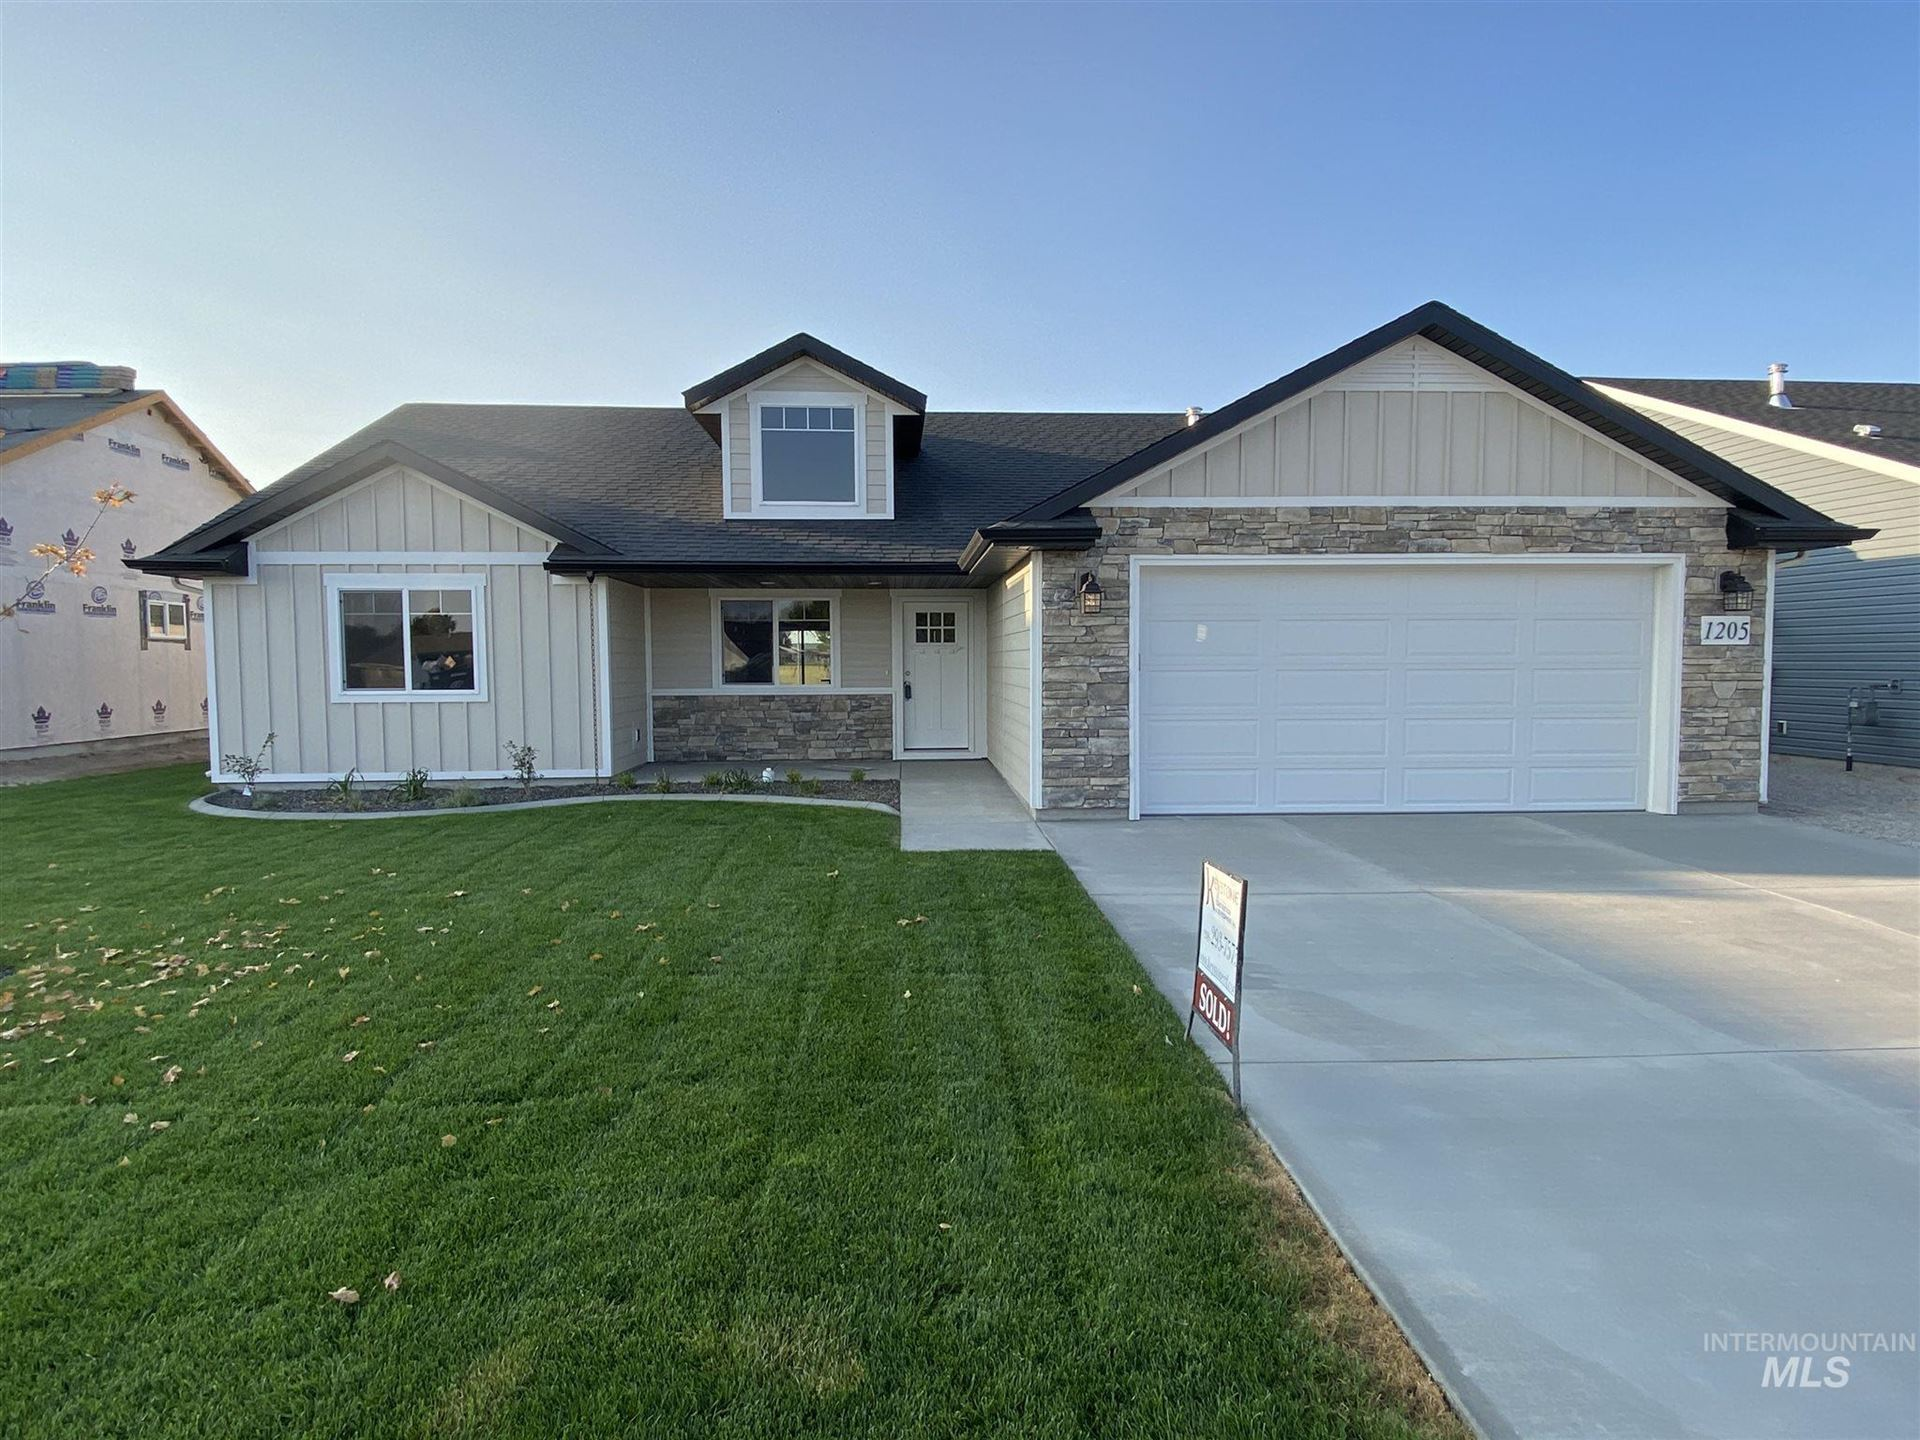 Photo of 1205 4th Avenue East, Jerome, ID 83338 (MLS # 98776628)